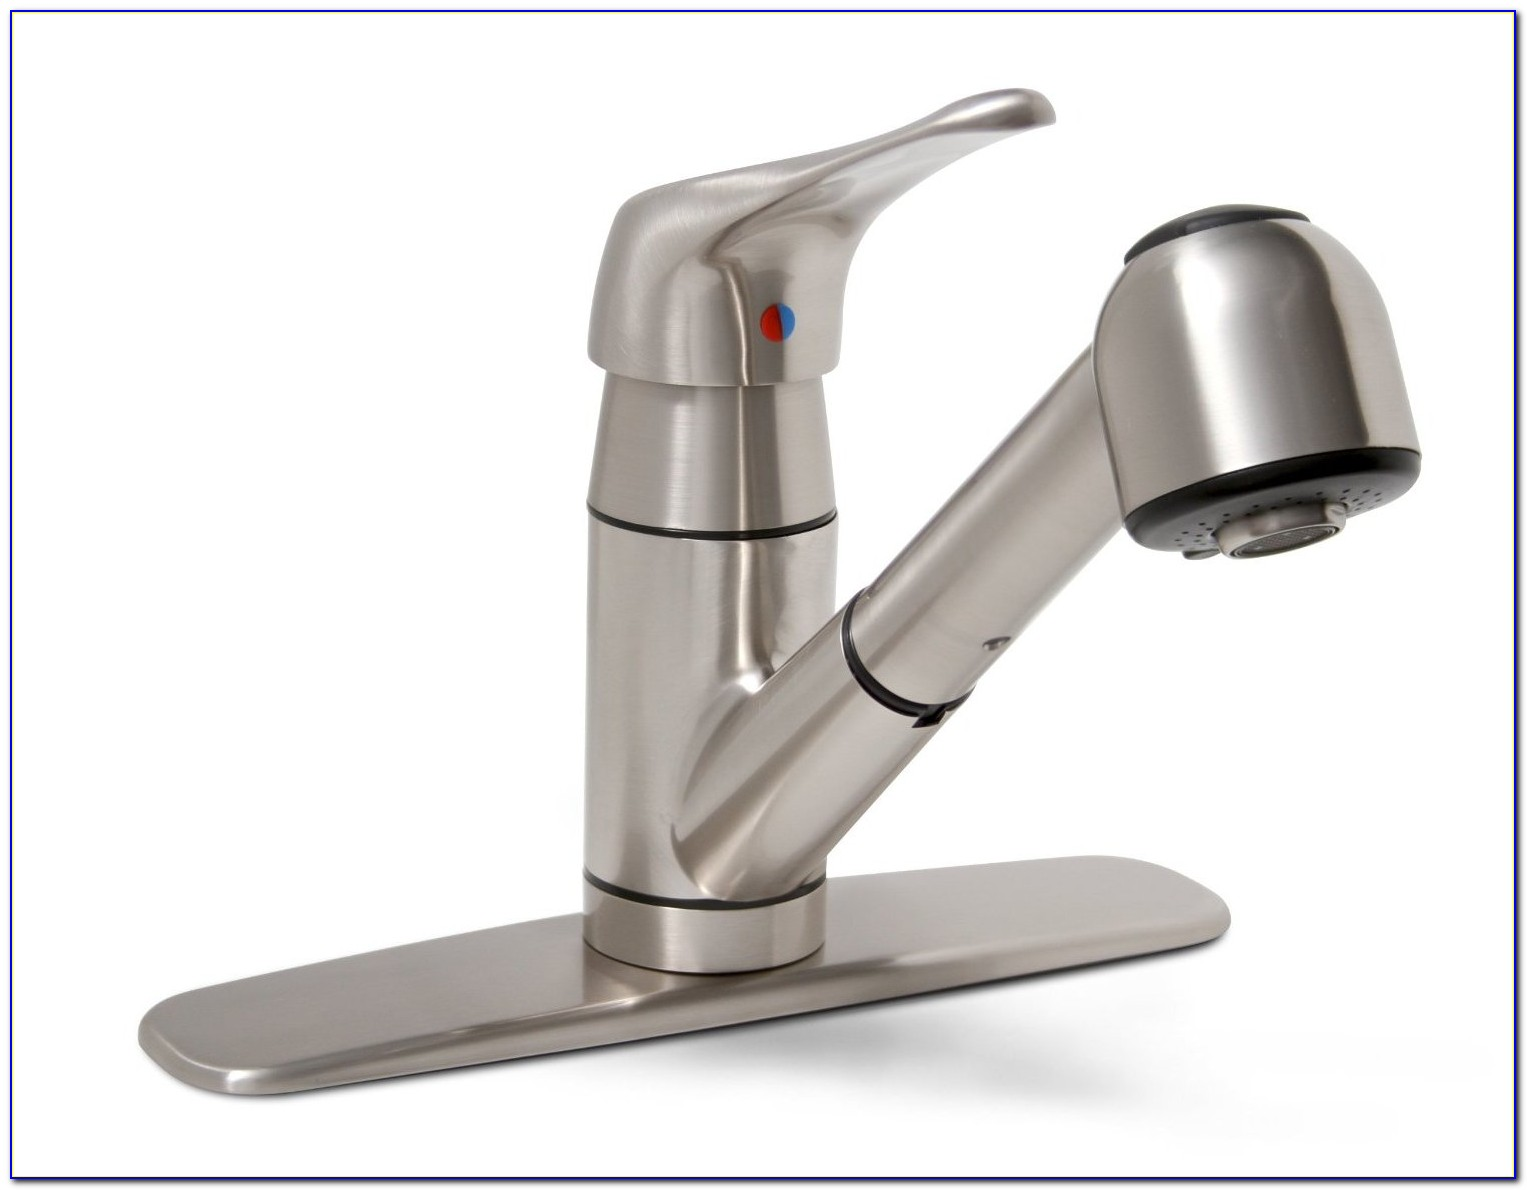 Water Filtration System For Pull Out Faucet